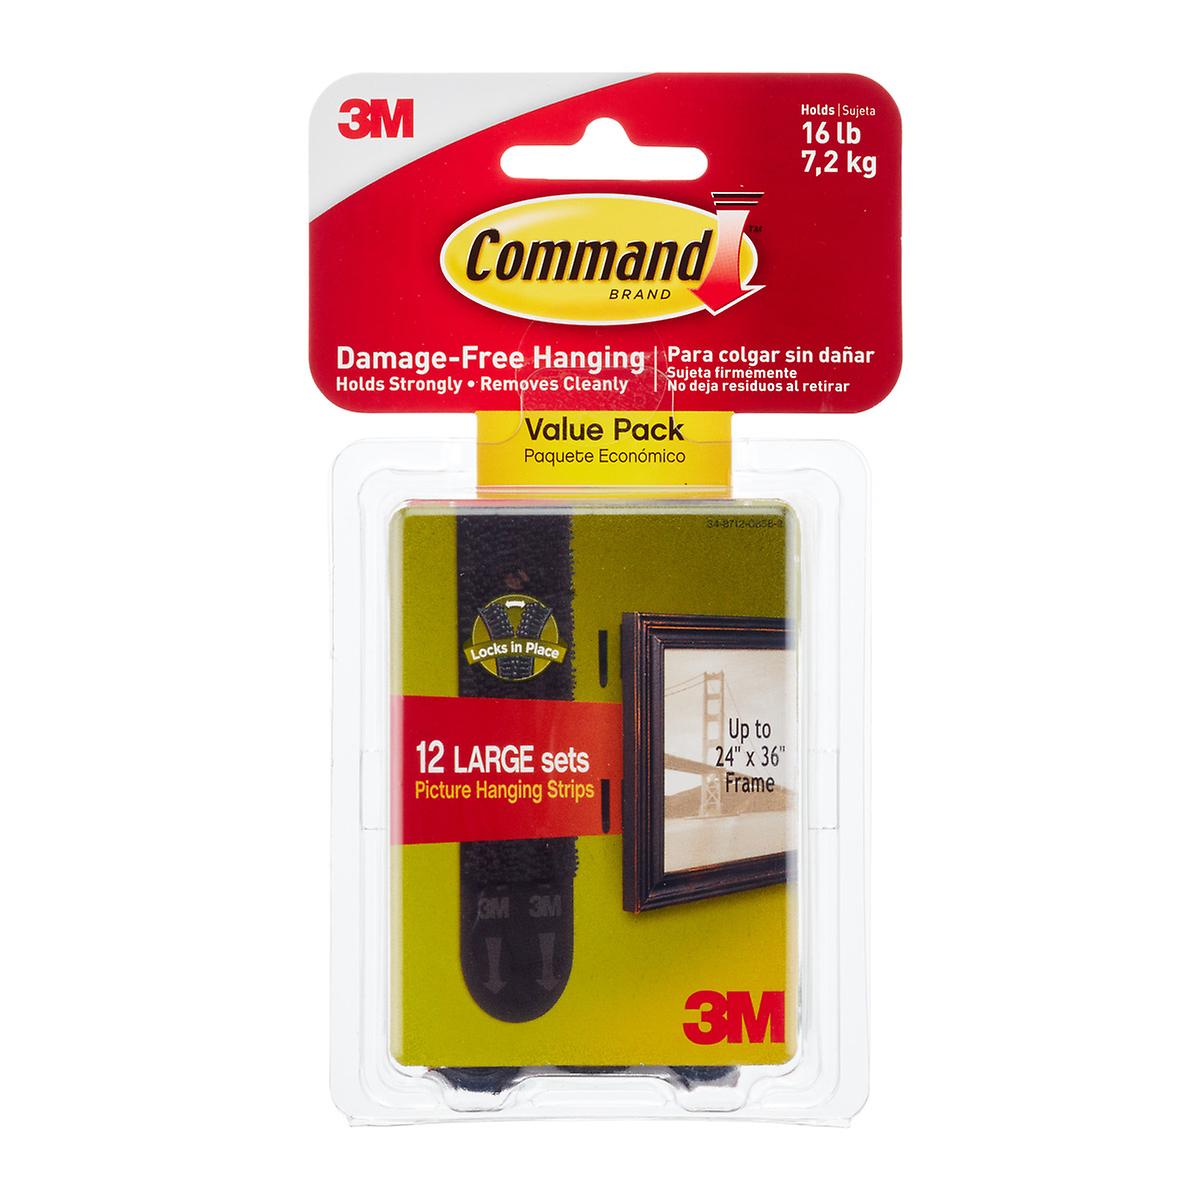 3M Command Adhesive Black Value Pack Picture Hanging Strips